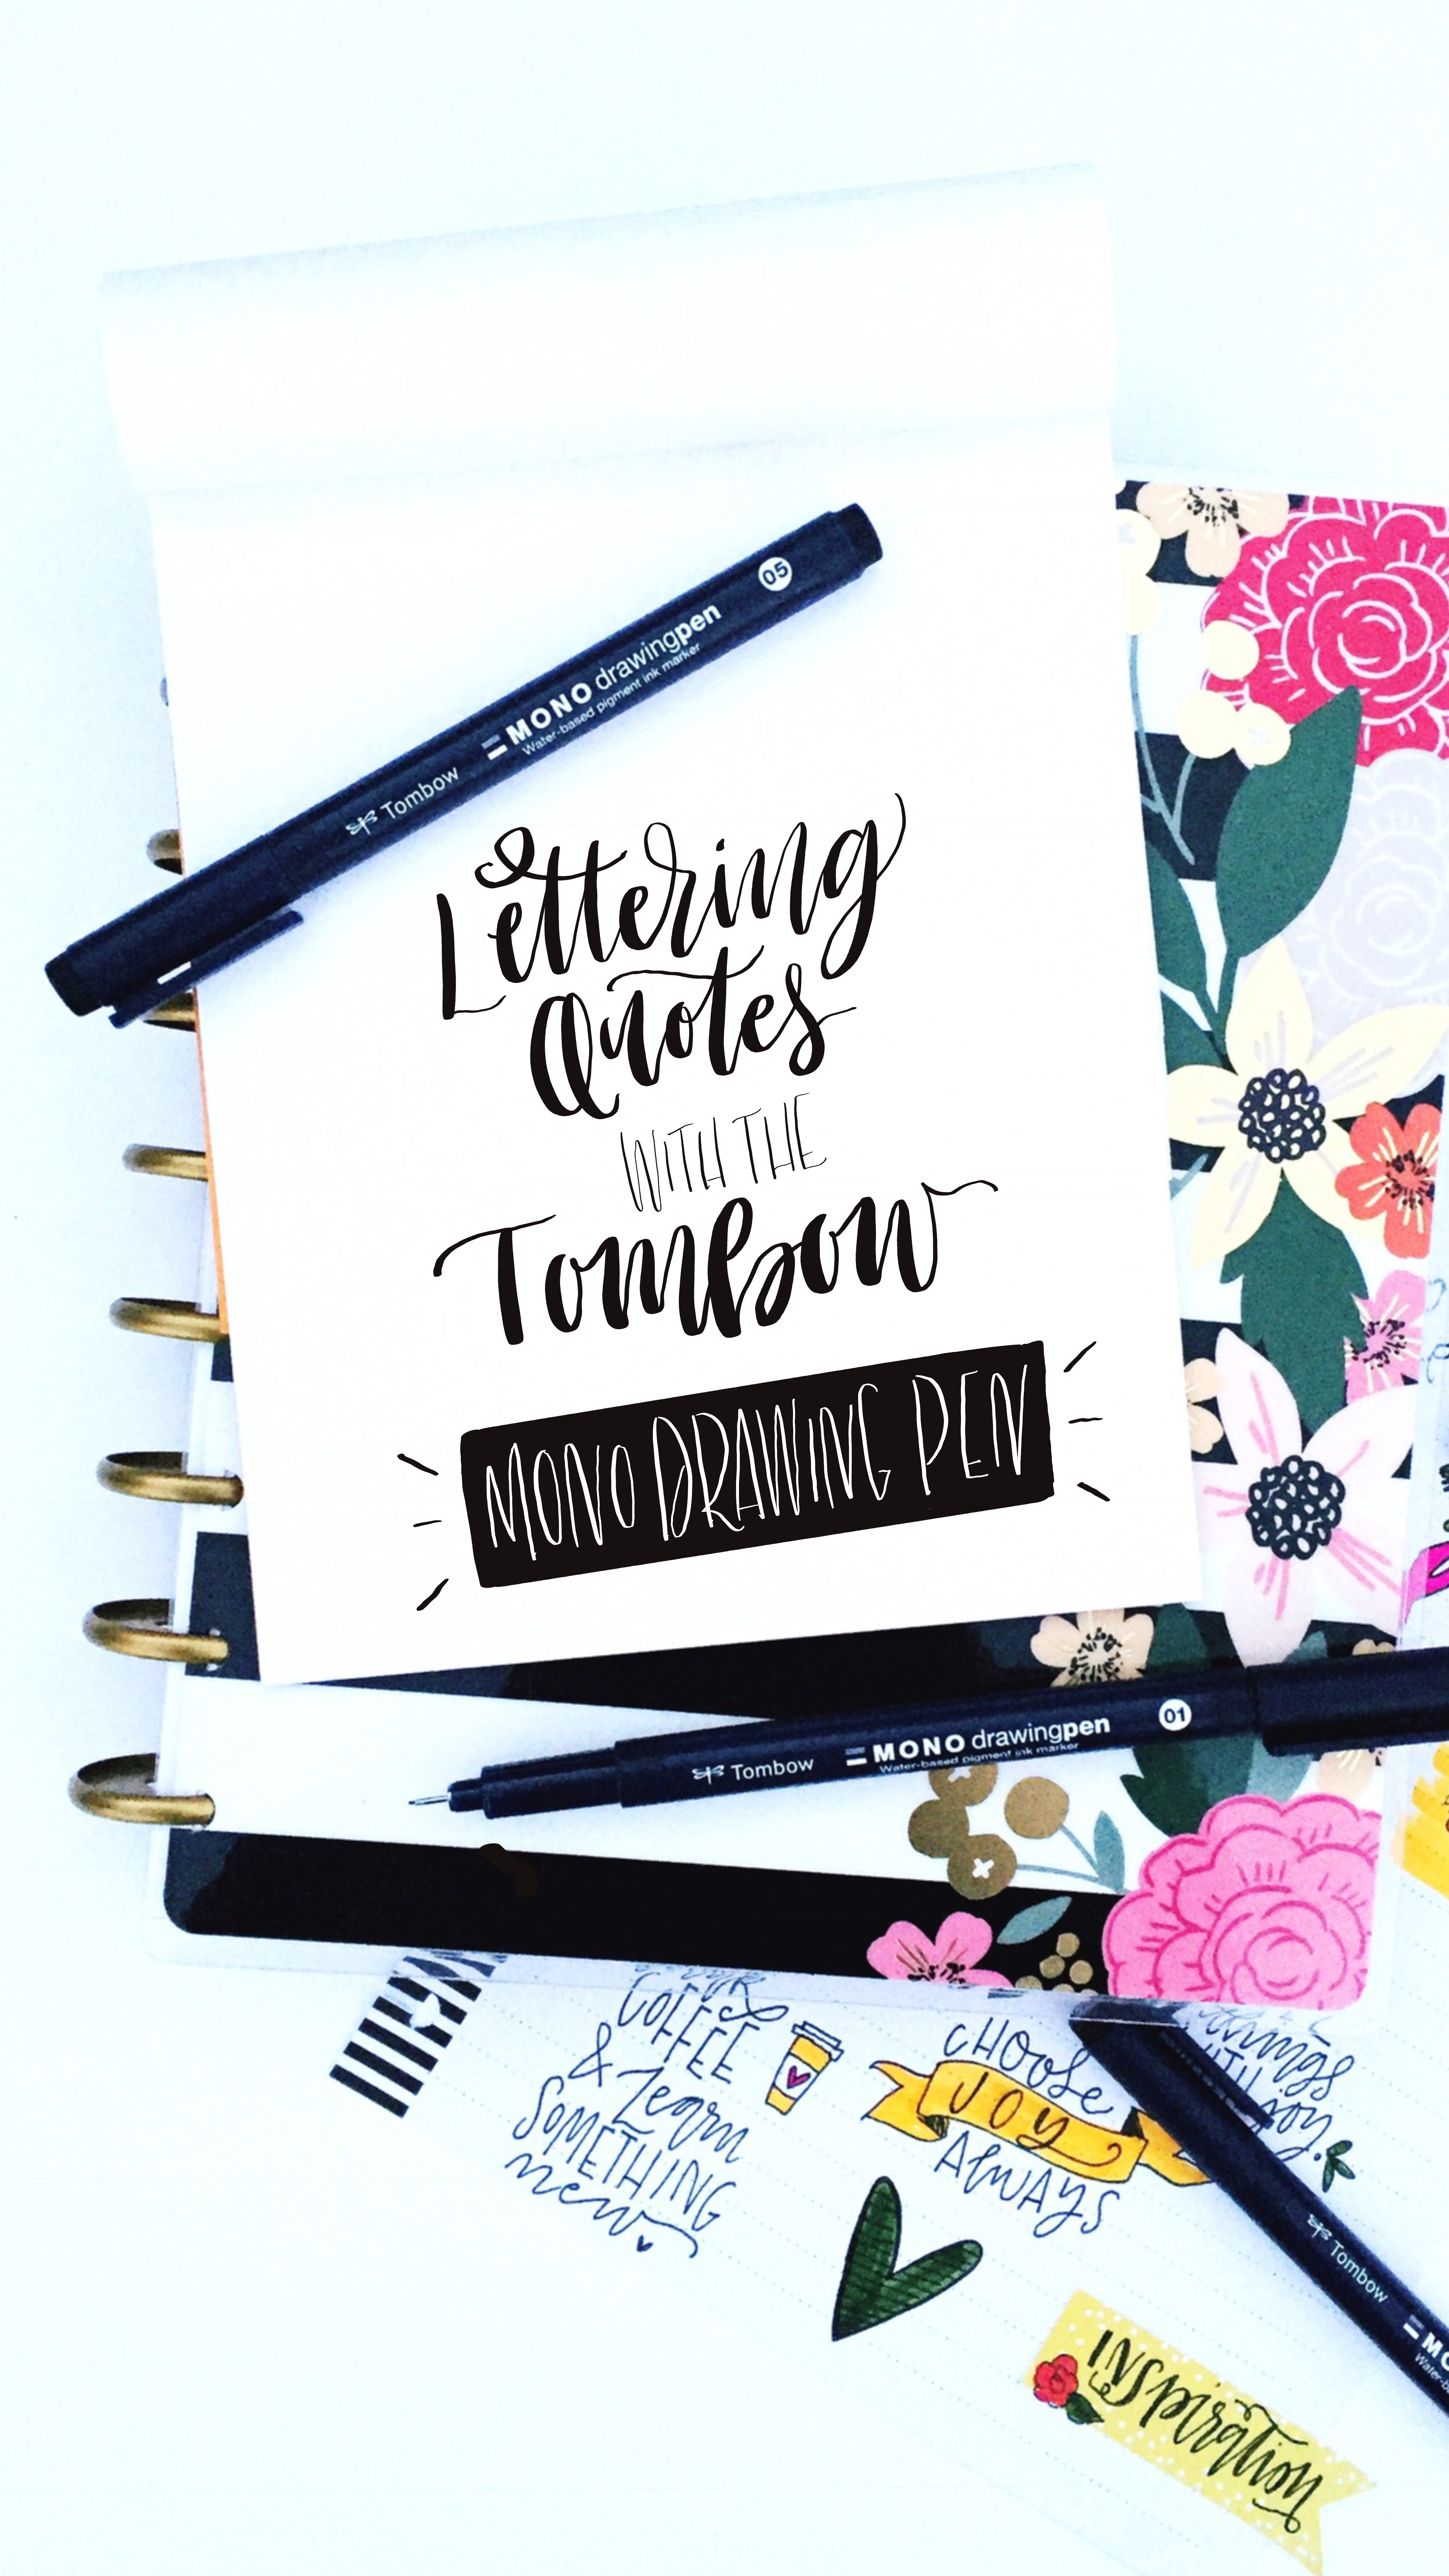 lettering quotes the tombow mono drawing pen tombow usa blog